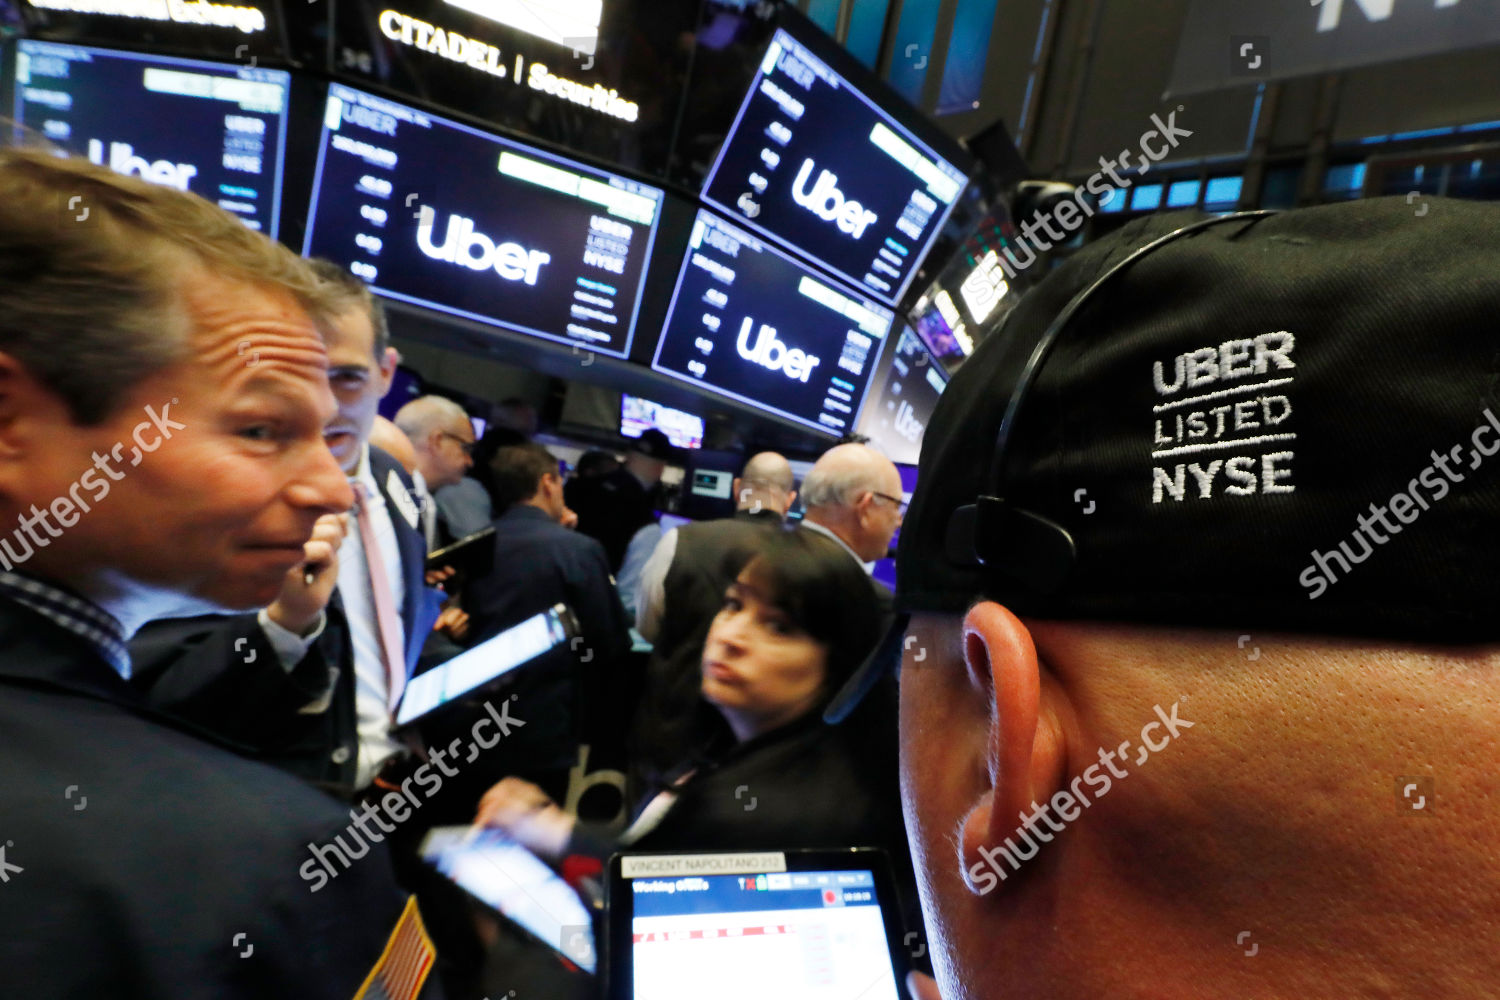 Stock traders wait open trading Uber shares Editorial Stock